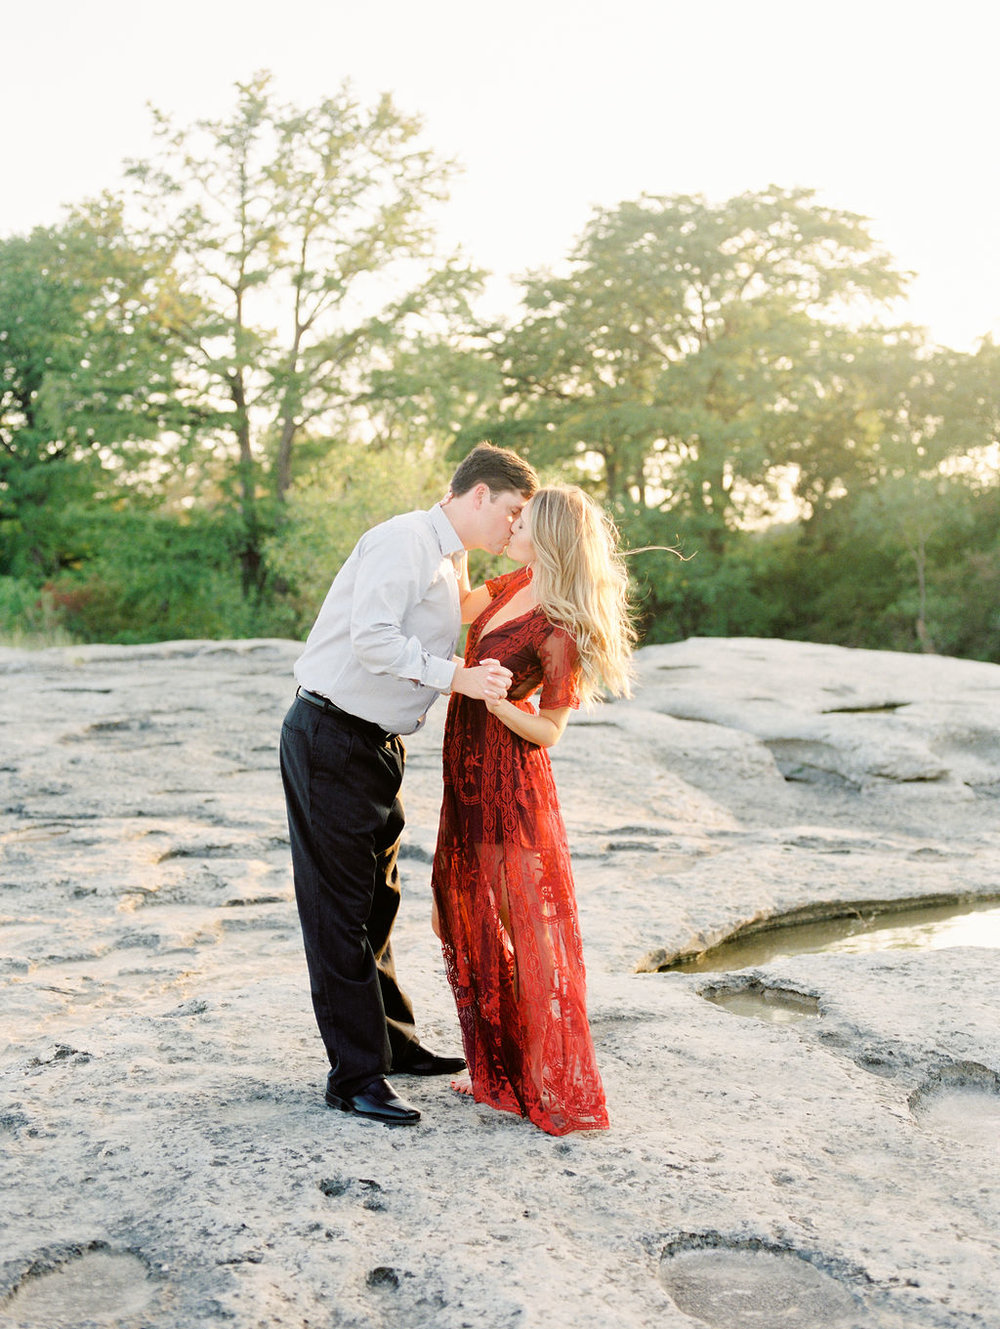 Austin-Film-Wedding-Engagement-Photographer-McKinney-Falls-25.jpg